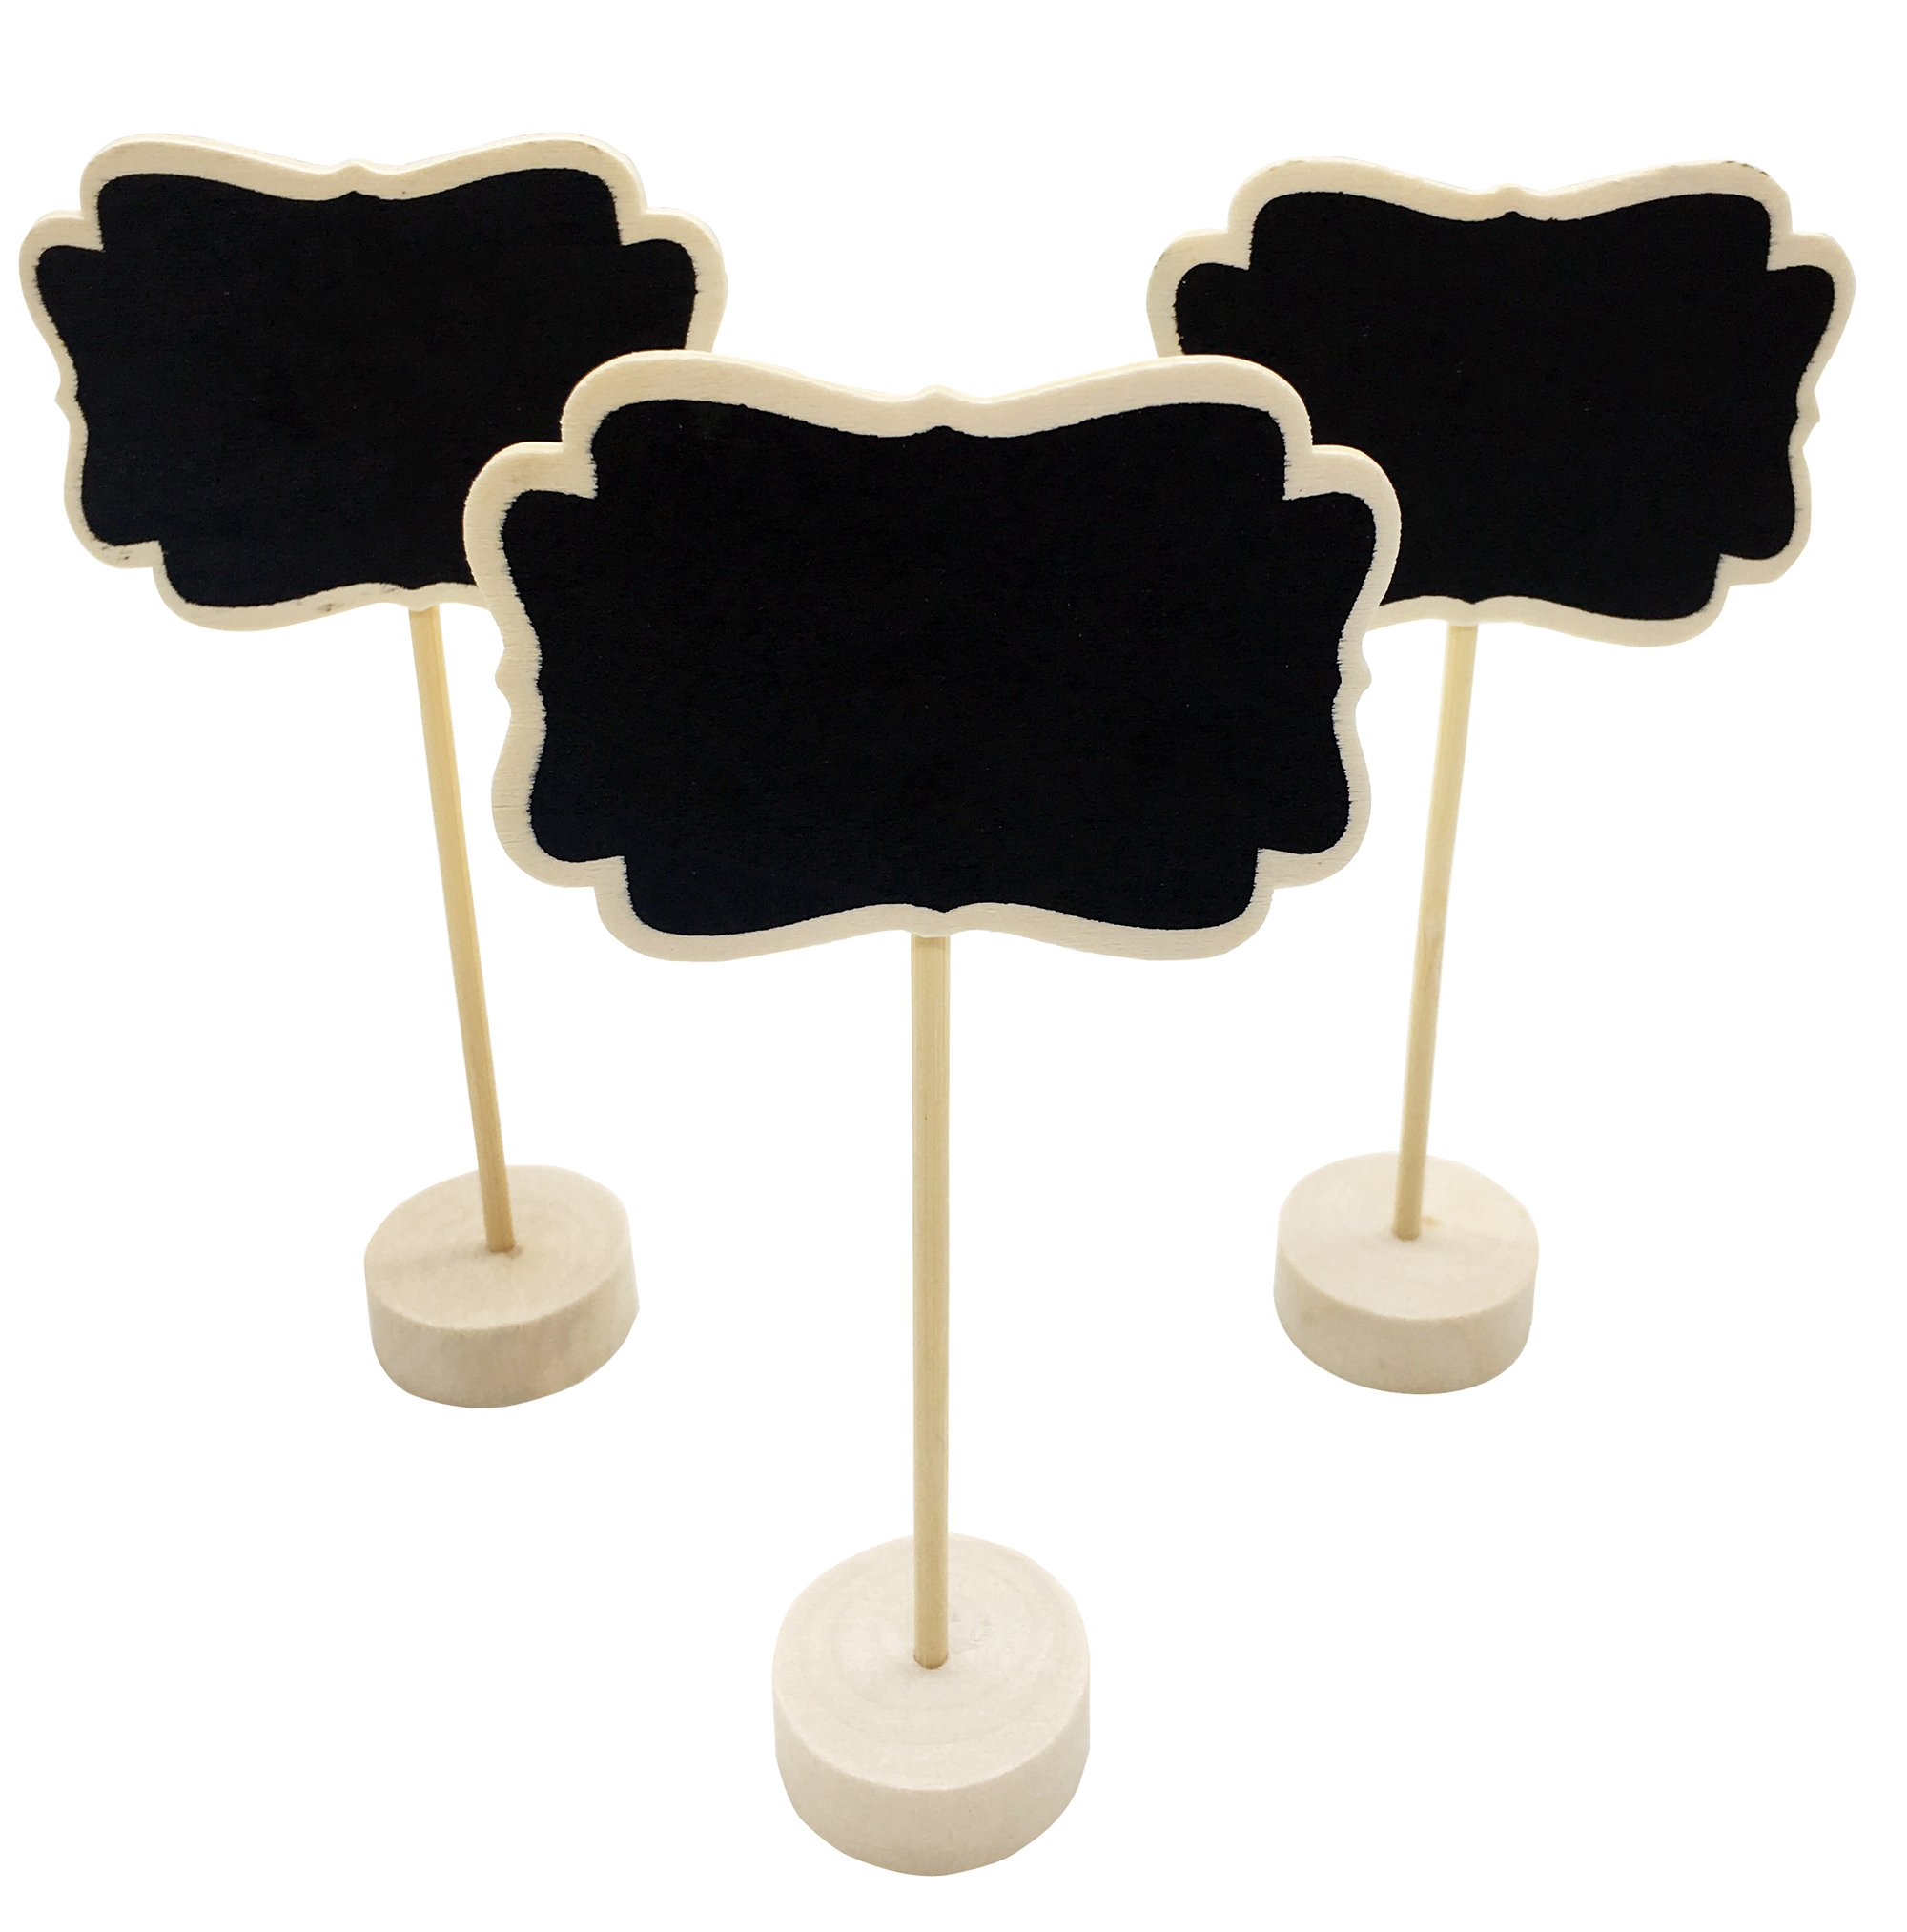 12 PACK Mini Chalkboards Stands for Message Board Signs Small Chalkboard Signs for Food Wedding Table Numbers Party Name Place Card Decorative Chalkboards Set Wet Towel Wip Off (Black-B)